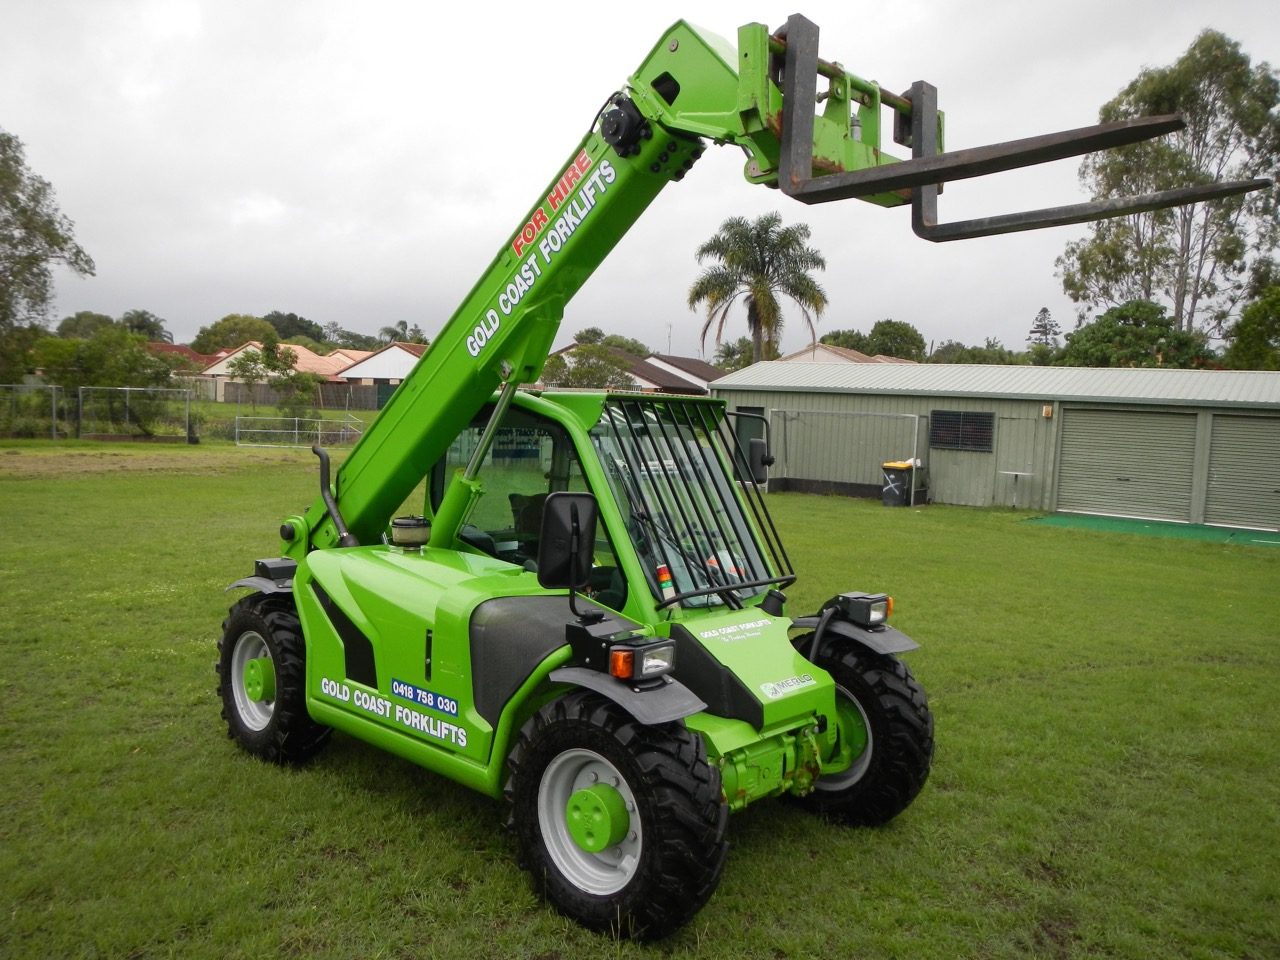 Tele Handler Section Our 25 6 Merlo Dry Hire Or Operator Service 4